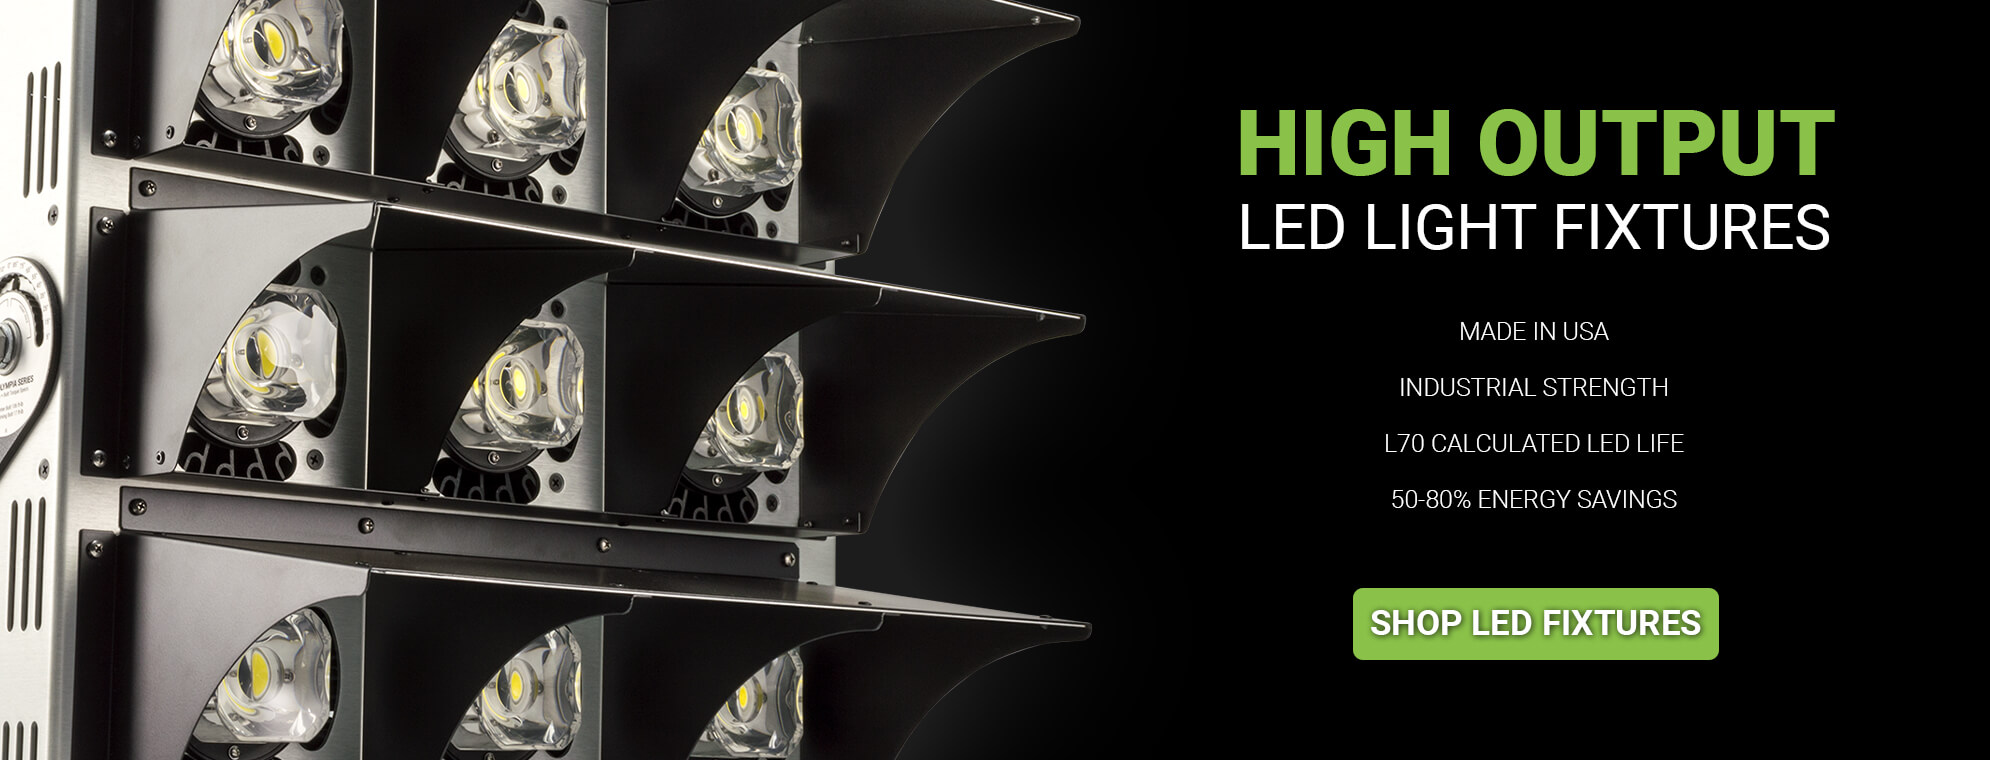 High Output LED Light Fixtures